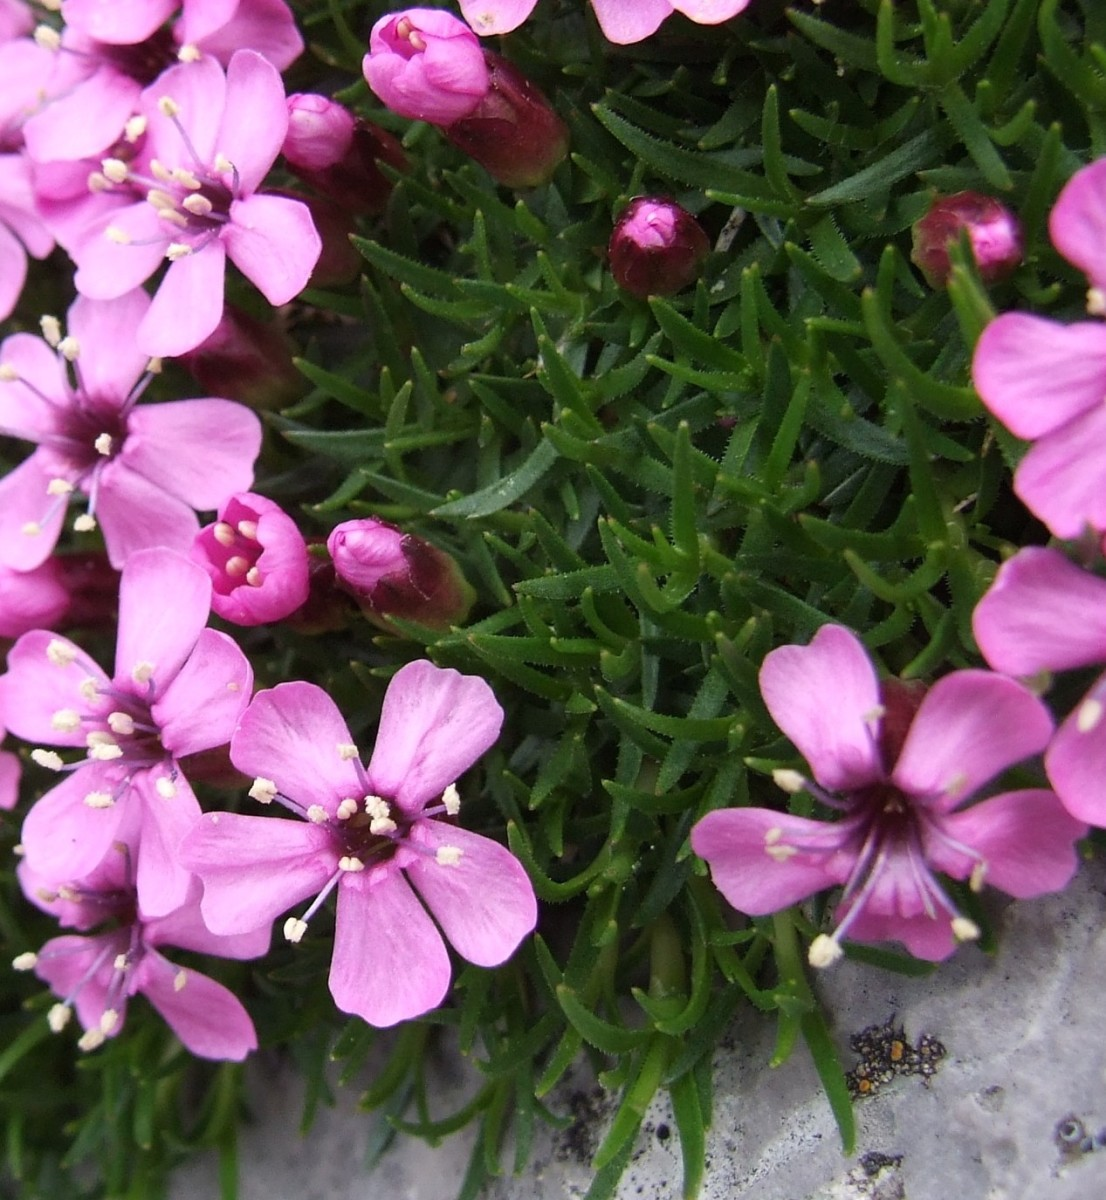 Native Cushion Pinks are much better for the garden than the typical Dianthus.